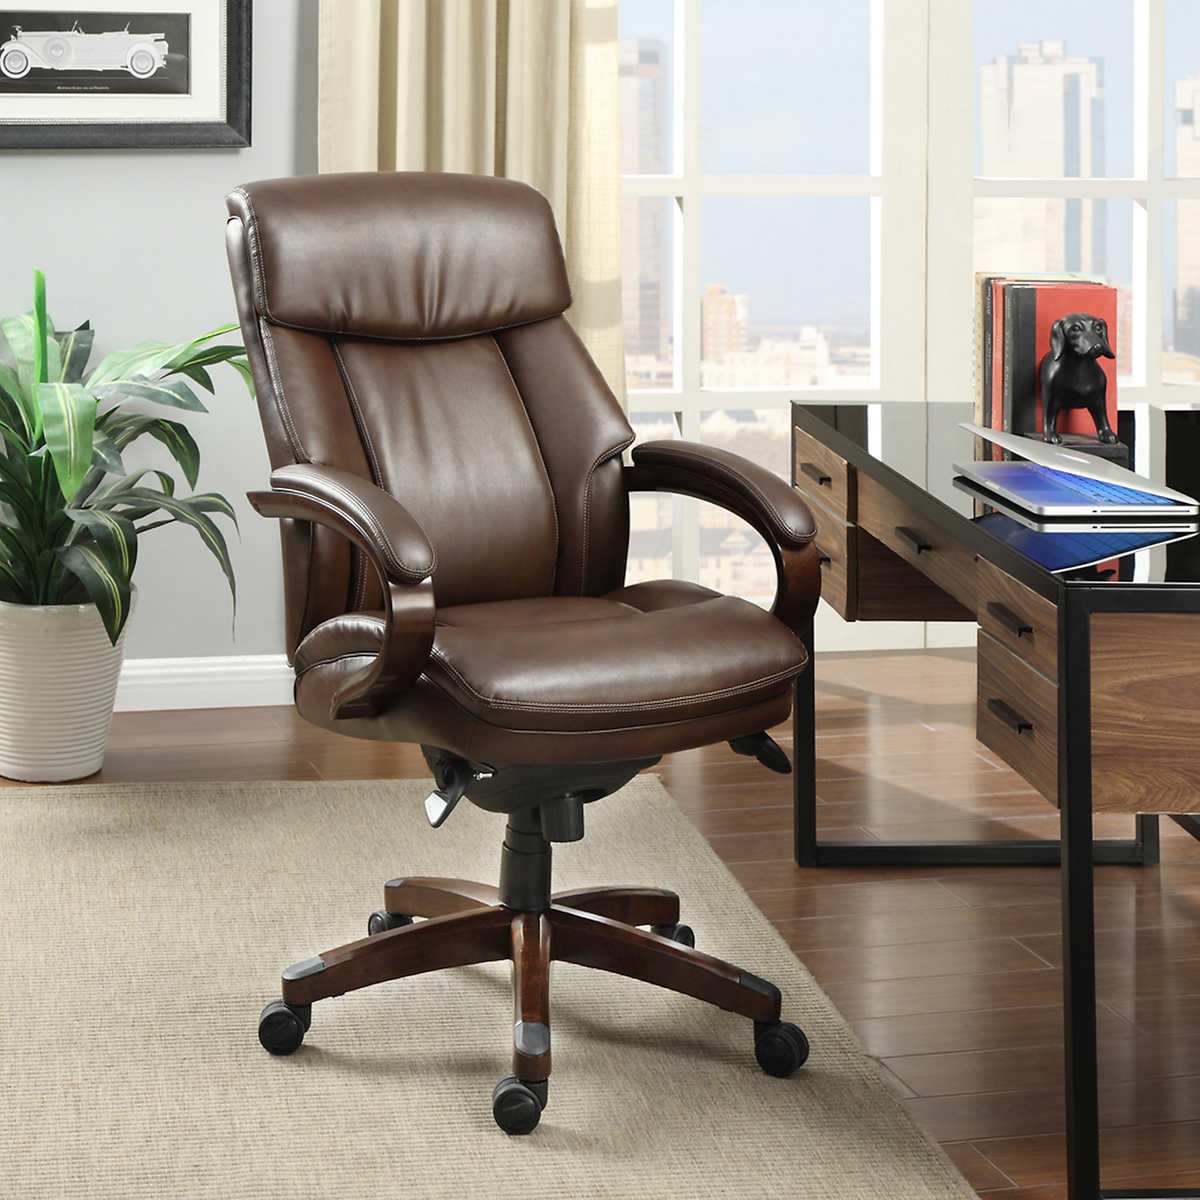 La-Z-Boy Executive Leather Office Chair